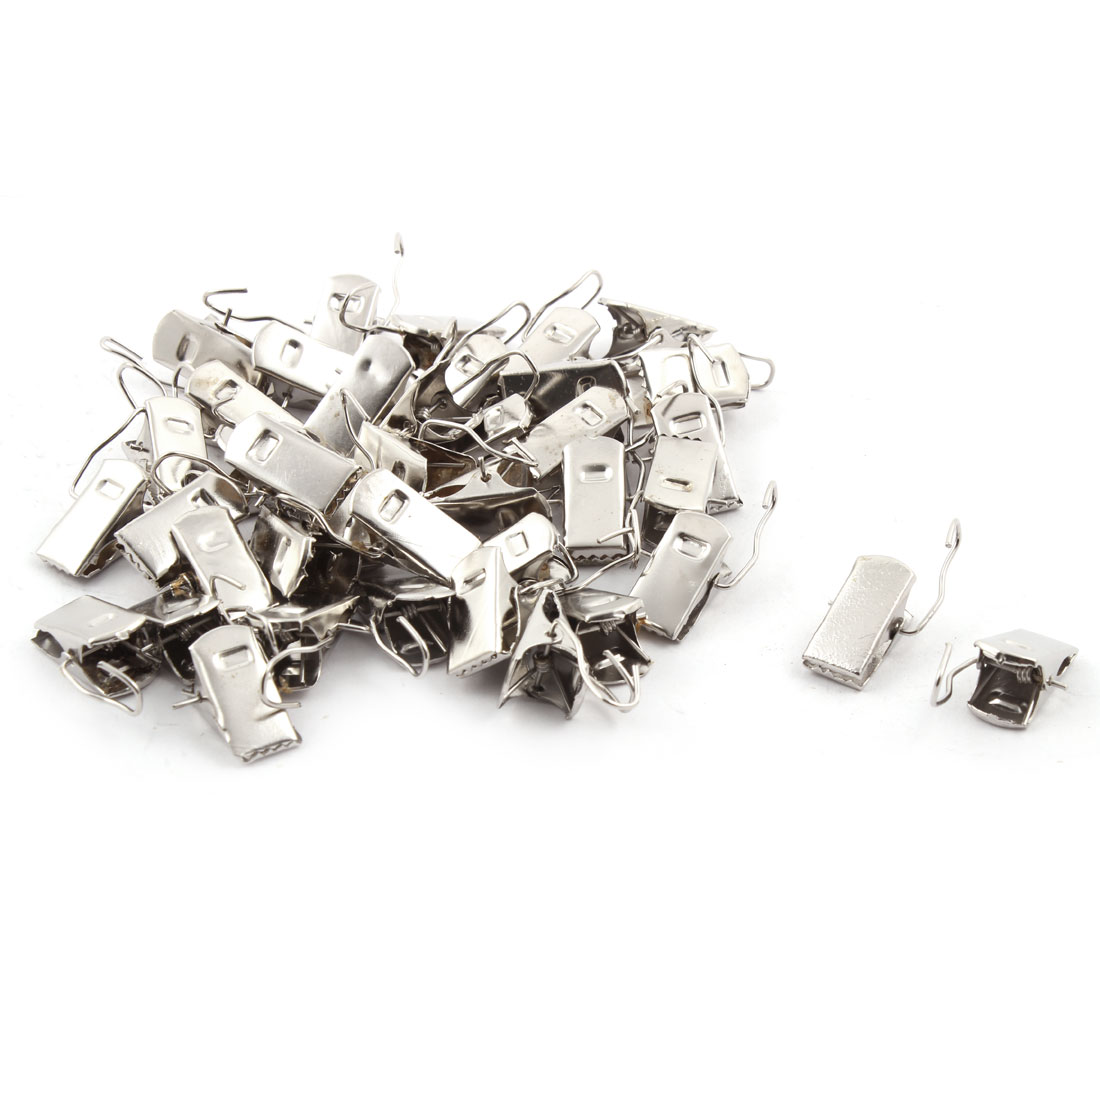 40 Pcs Silver Tone Metal Sprung Curtain Alligator Clips w Hook